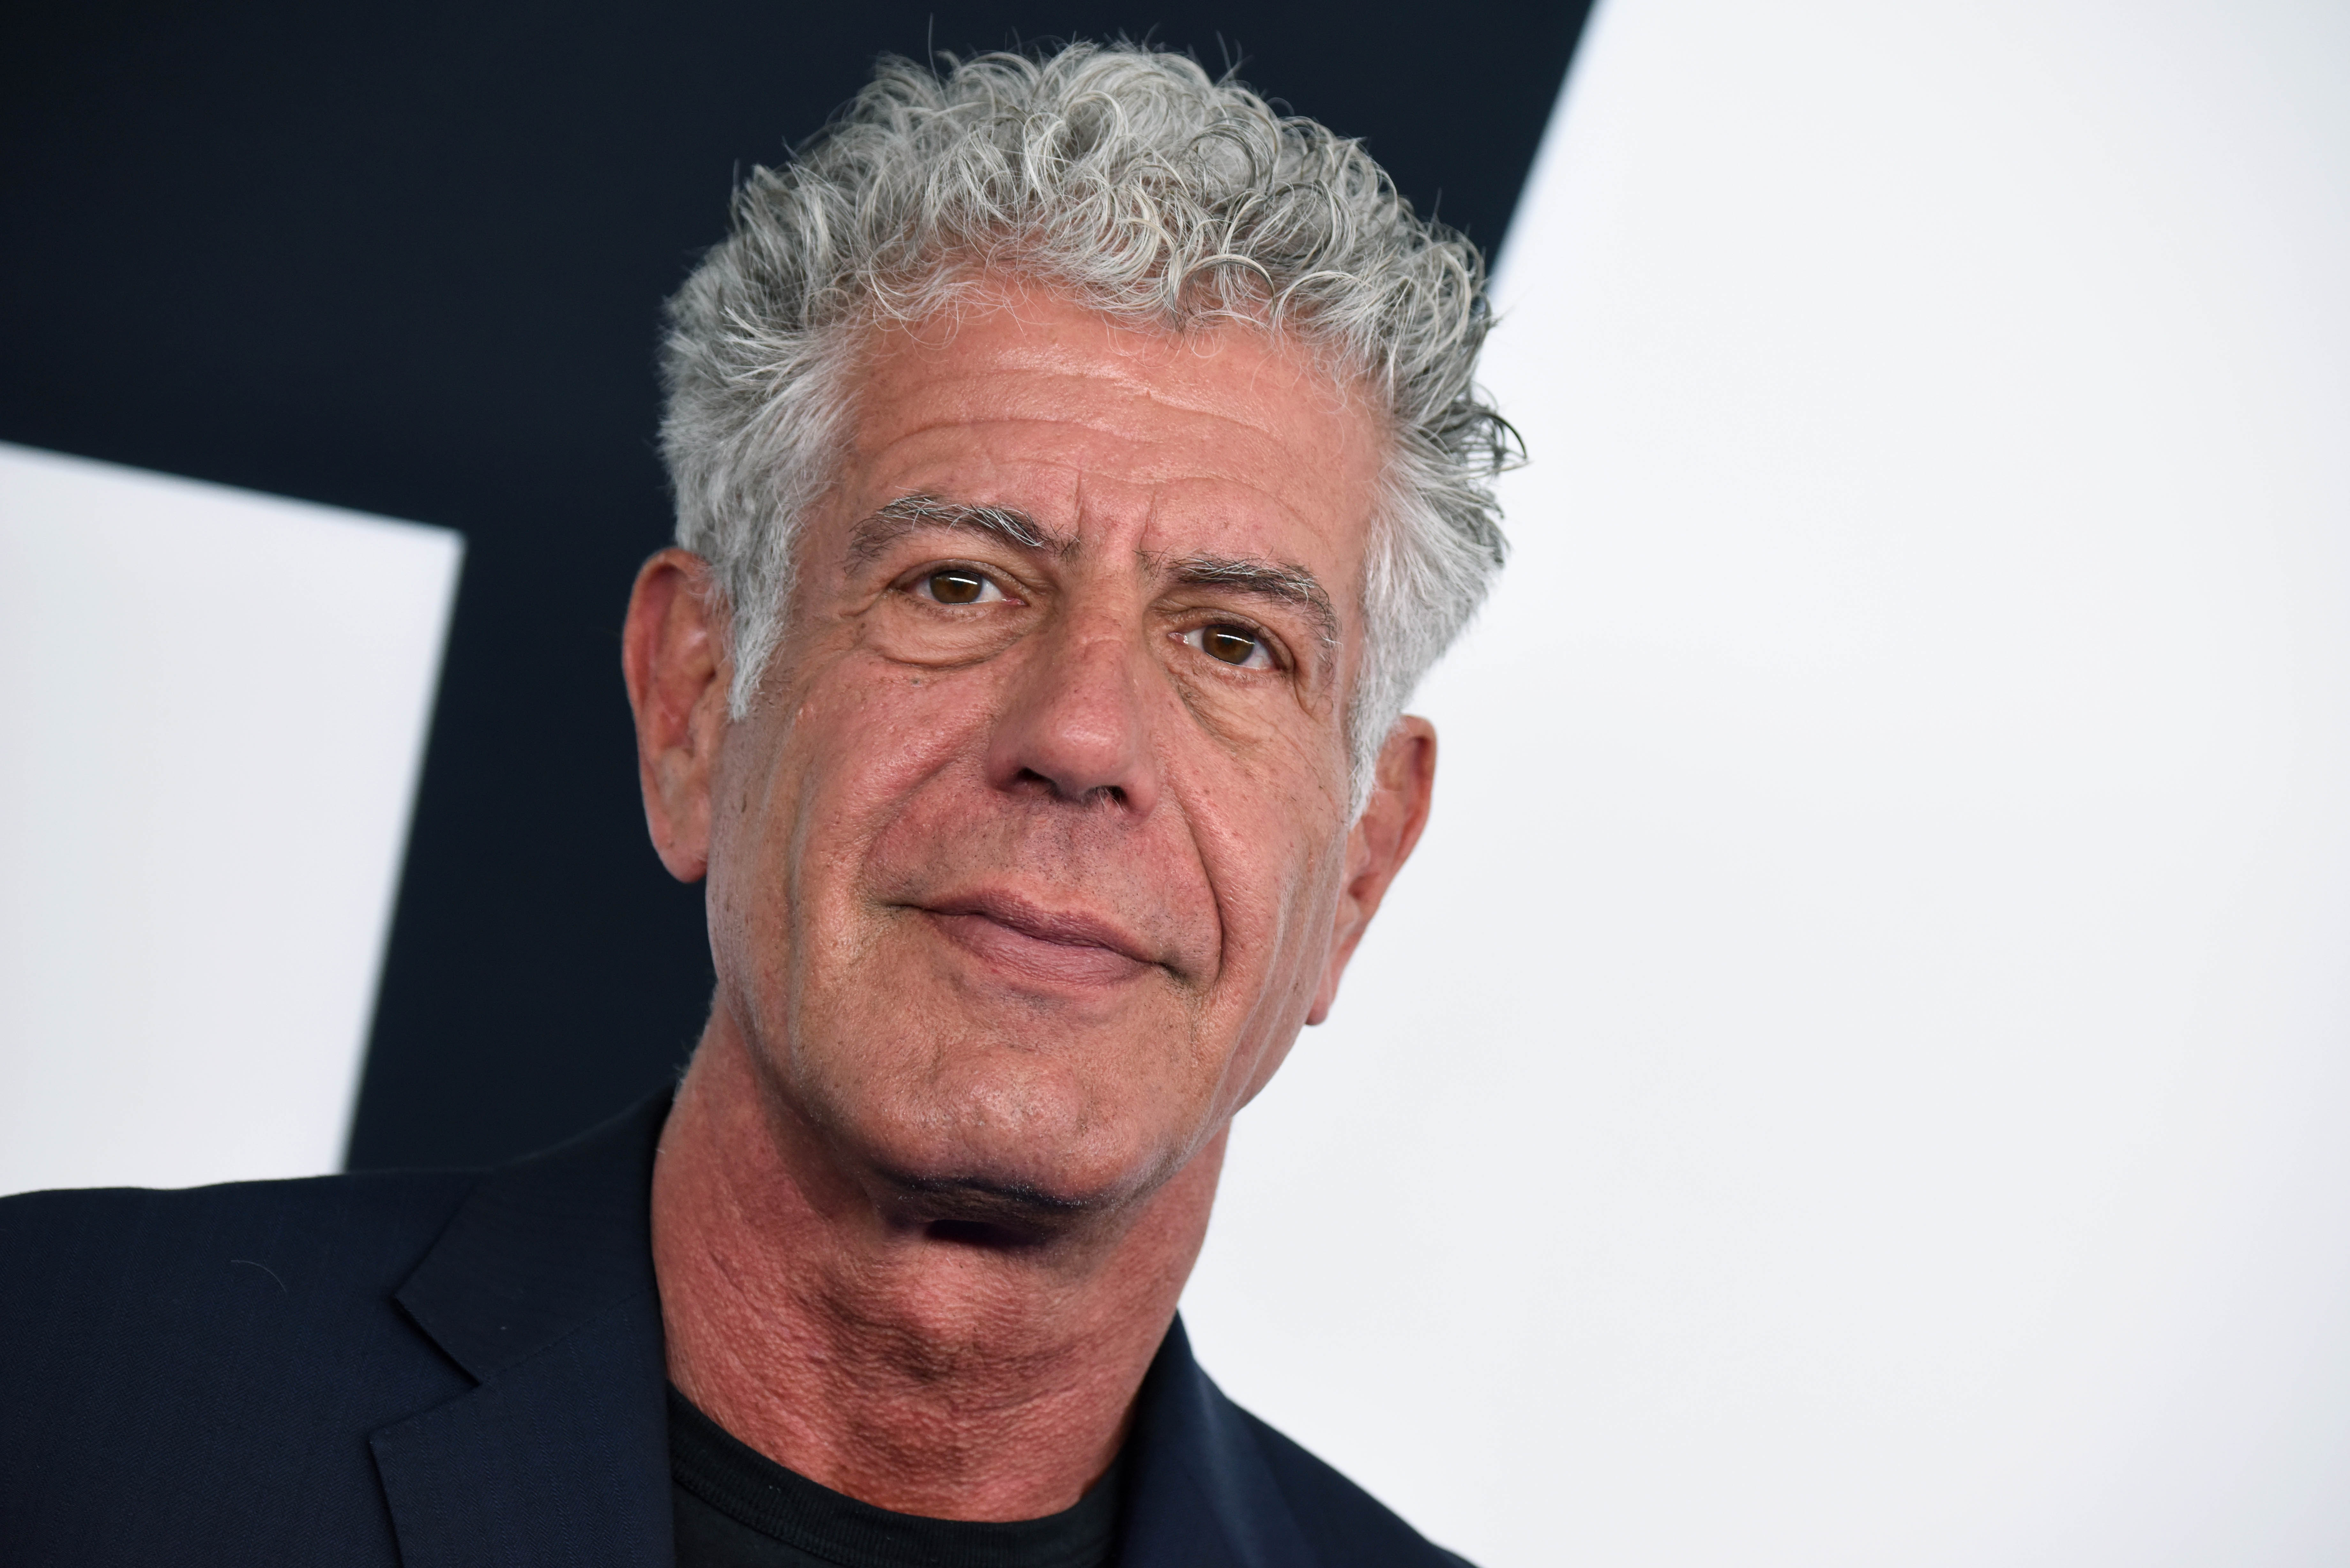 French chef recounts serving Anthony Bourdain before his death